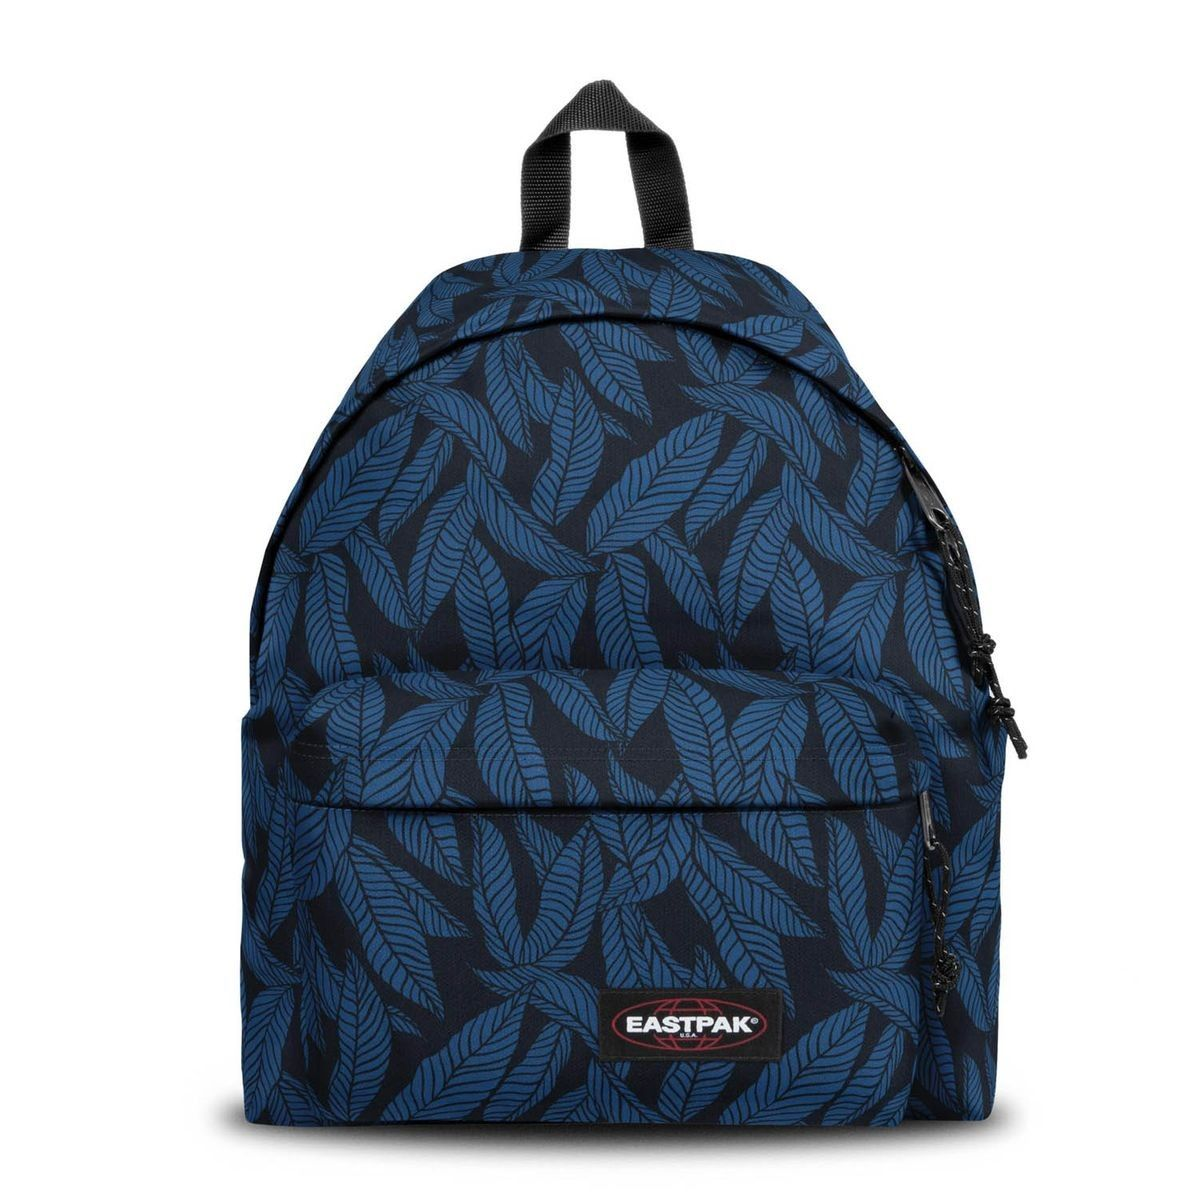 Eastpak Sac Pak'r Dos À Pinterest Padded Products Jeux Twq78BwCU